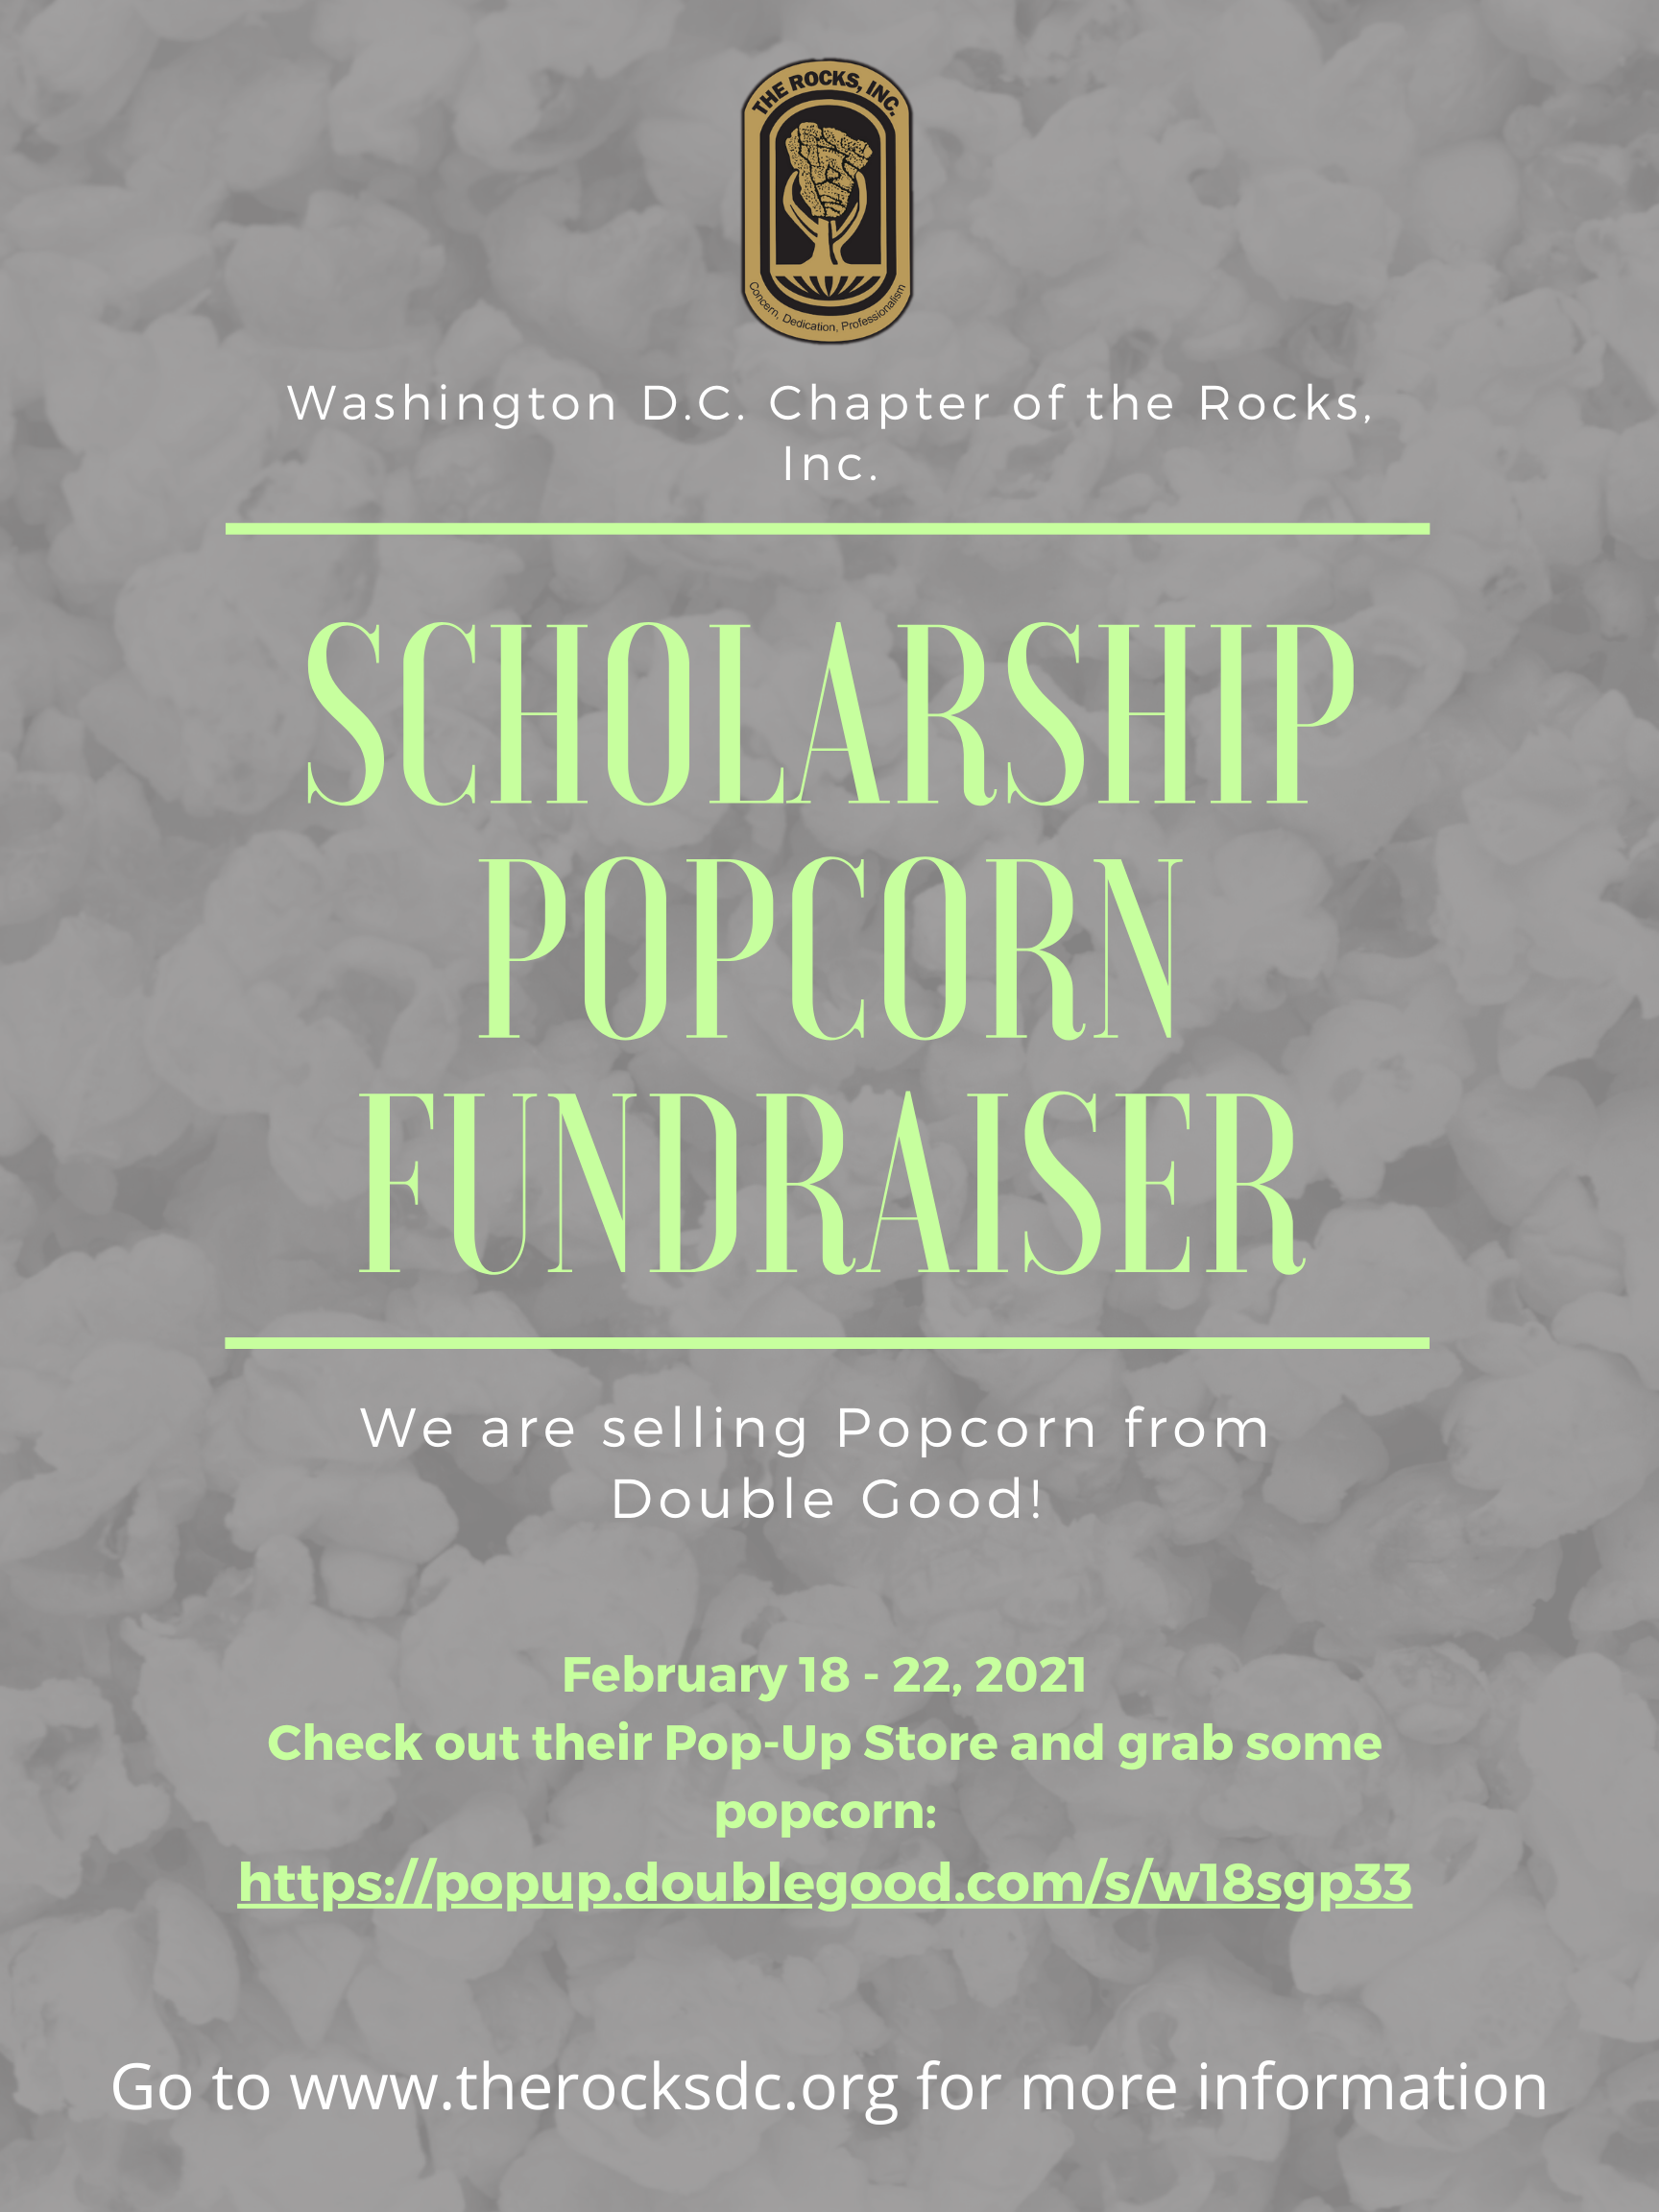 Scholarship Popcorn Fundraiser with Double Good!